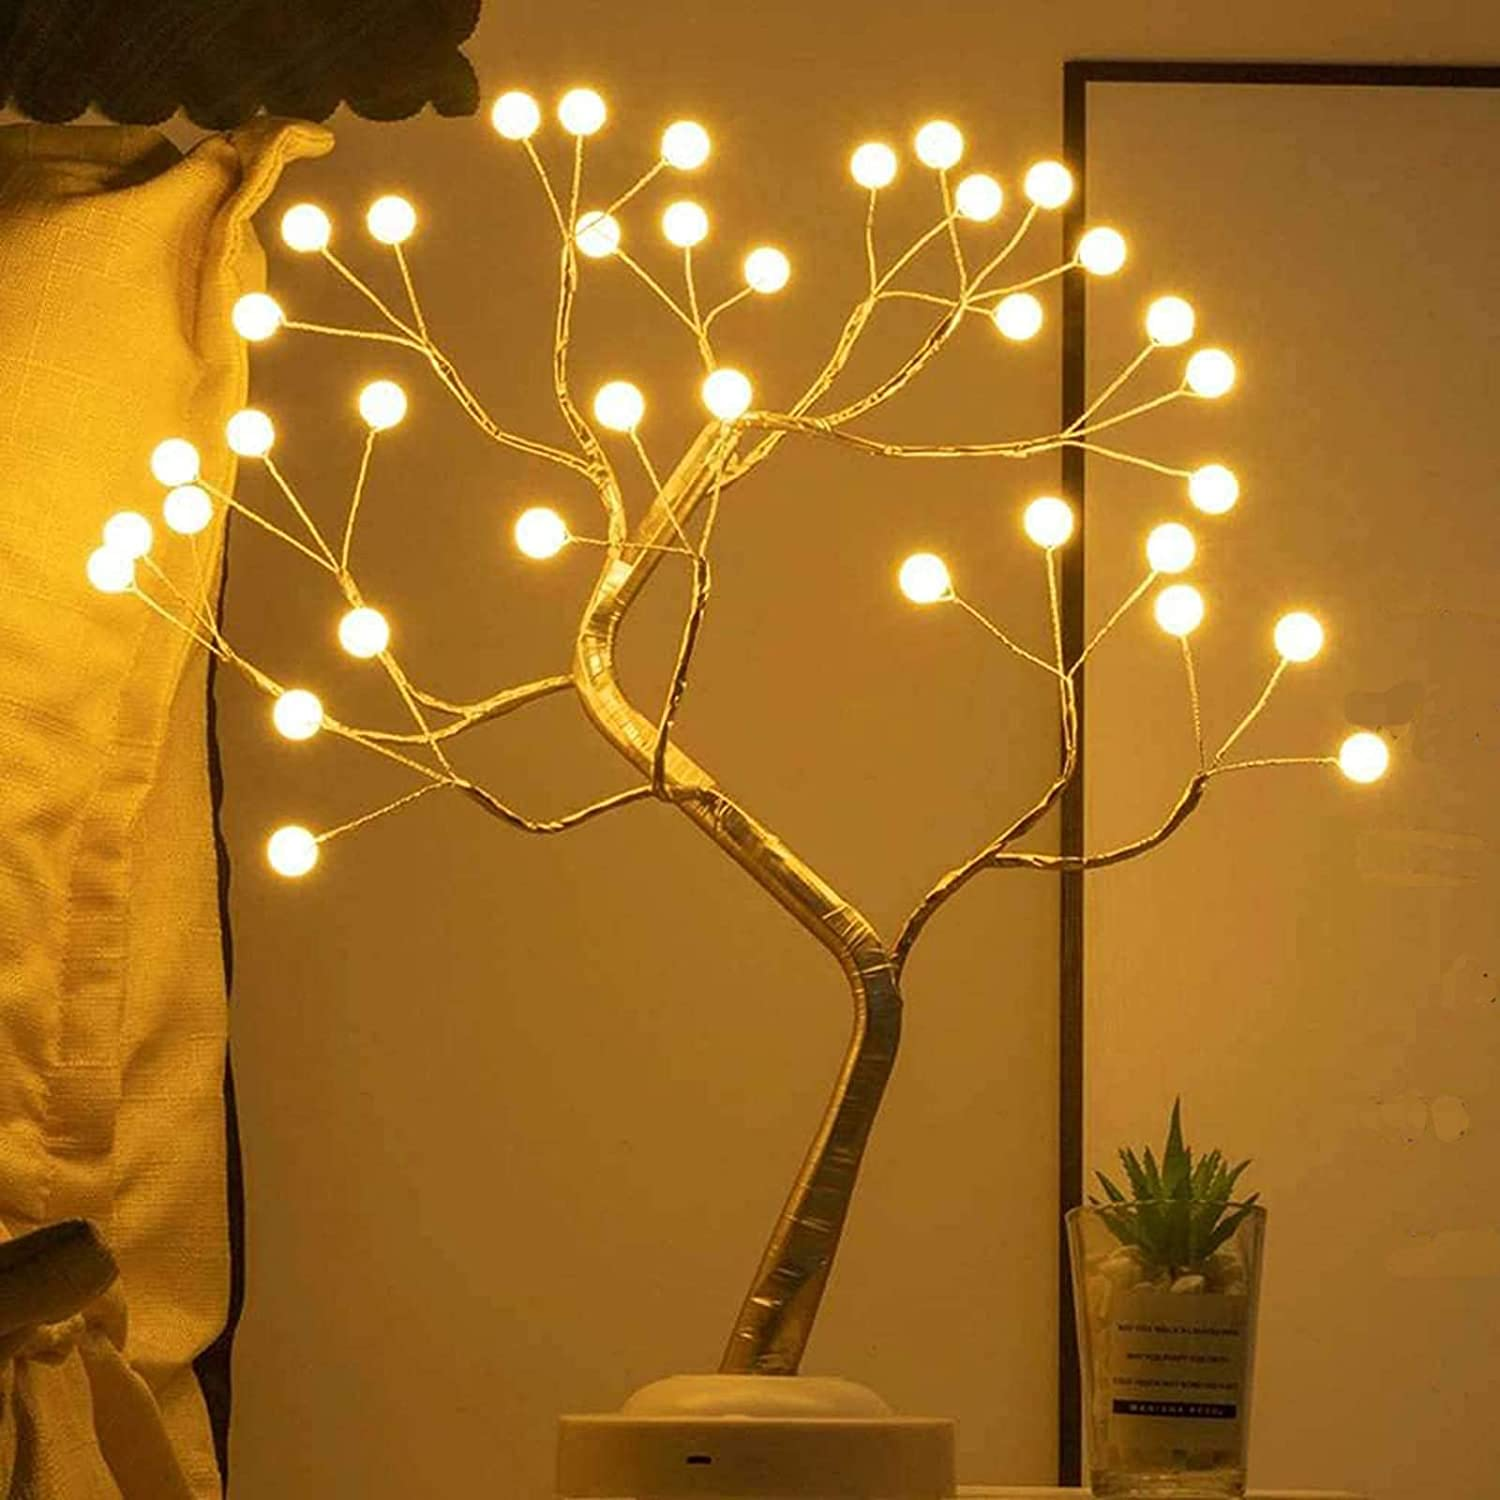 Lxcom Lighting LED Globe Lights 36 LEDs New Gold Copper Wire Tree Branches LED Bonsai Table Tree Lighted USB Battery Operated with Touch Switch Decorative Desk Lamp for Home Decor, Warm White